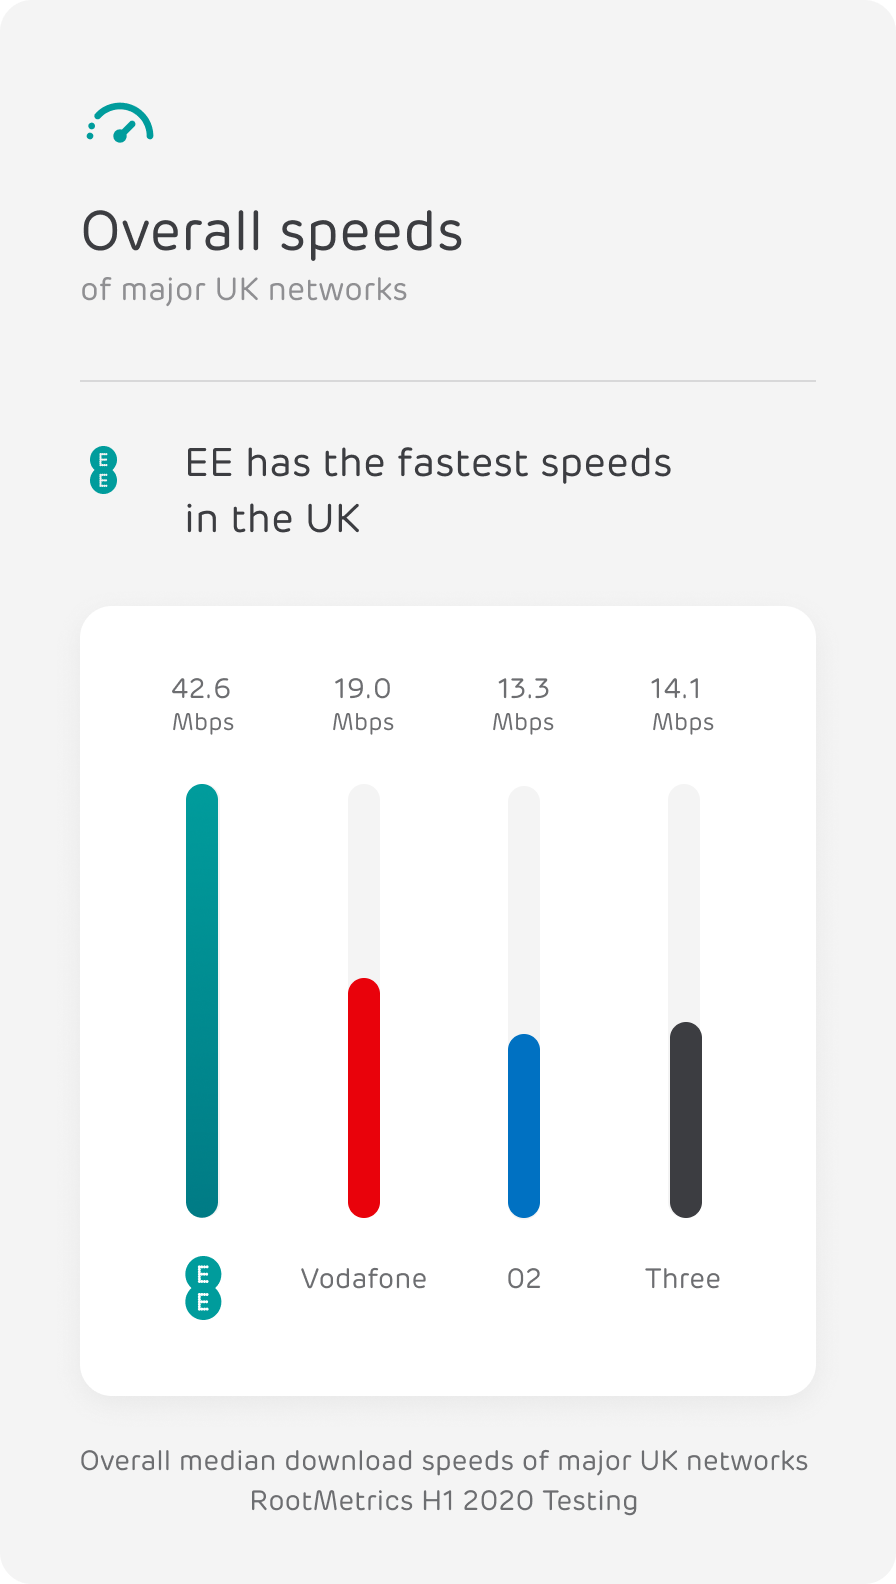 Graph of 4G and 5G speeds by network operator